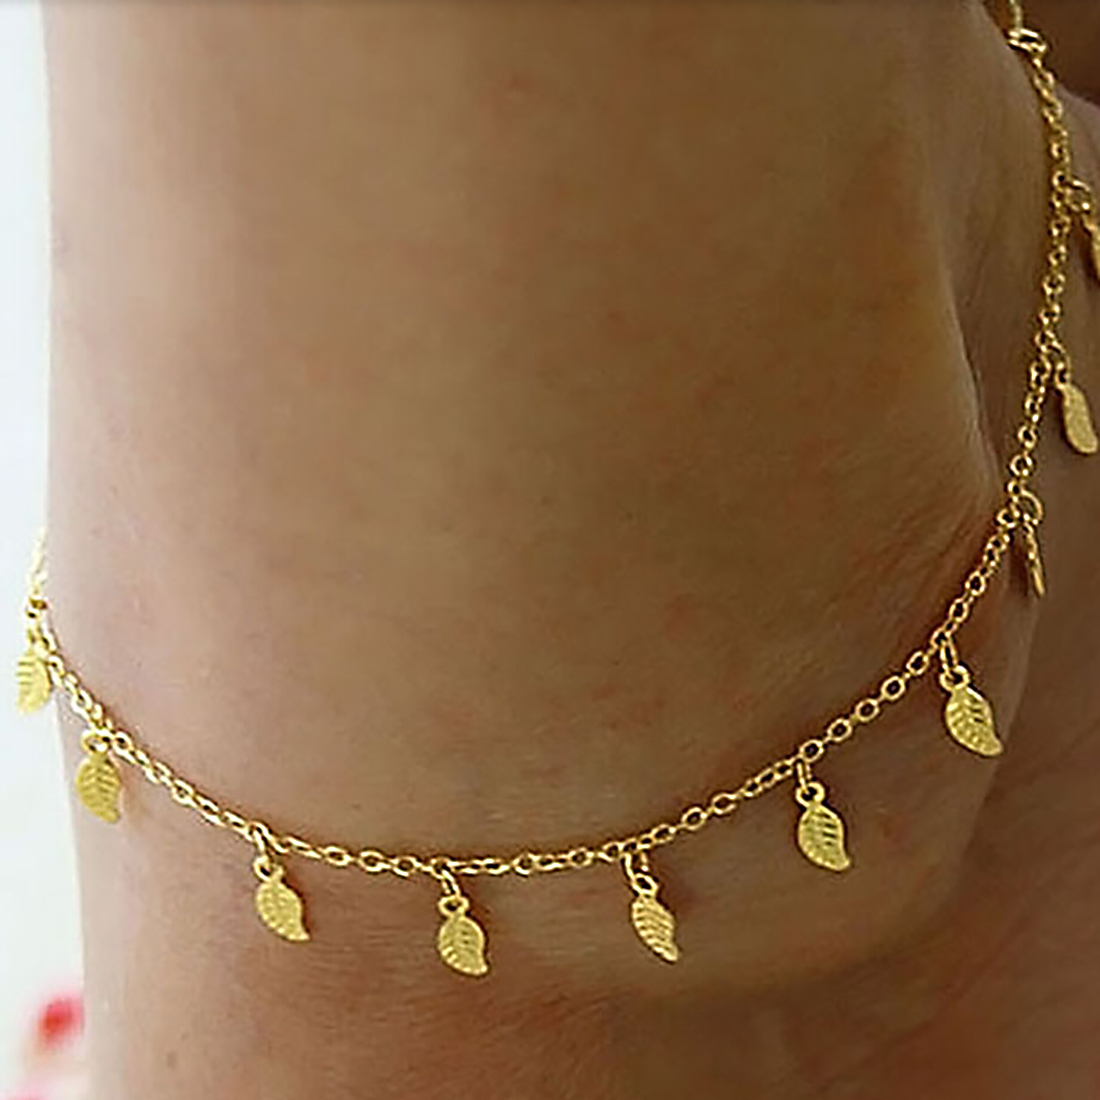 Fine Sexy Anklet Style Gold Leaves Ankle Bracelet Barefoot Sandals Foot Jewelry Leg Chain On Foot For Women